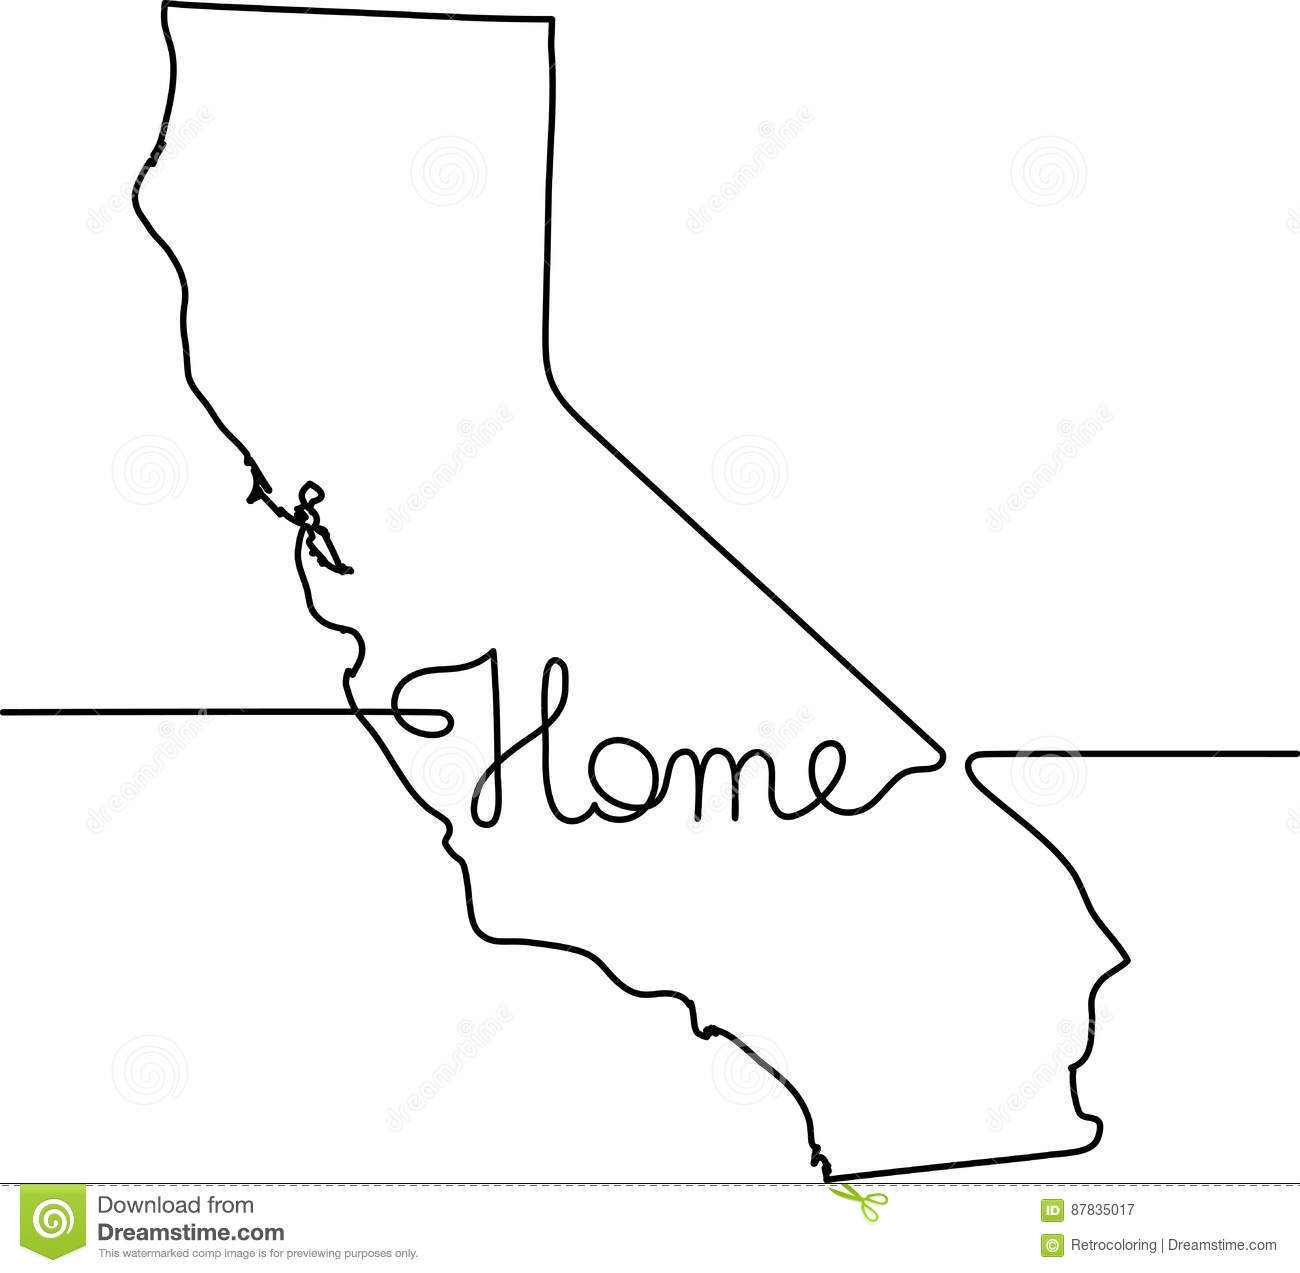 Continuous Line Drawing Of California Home Sign Stock